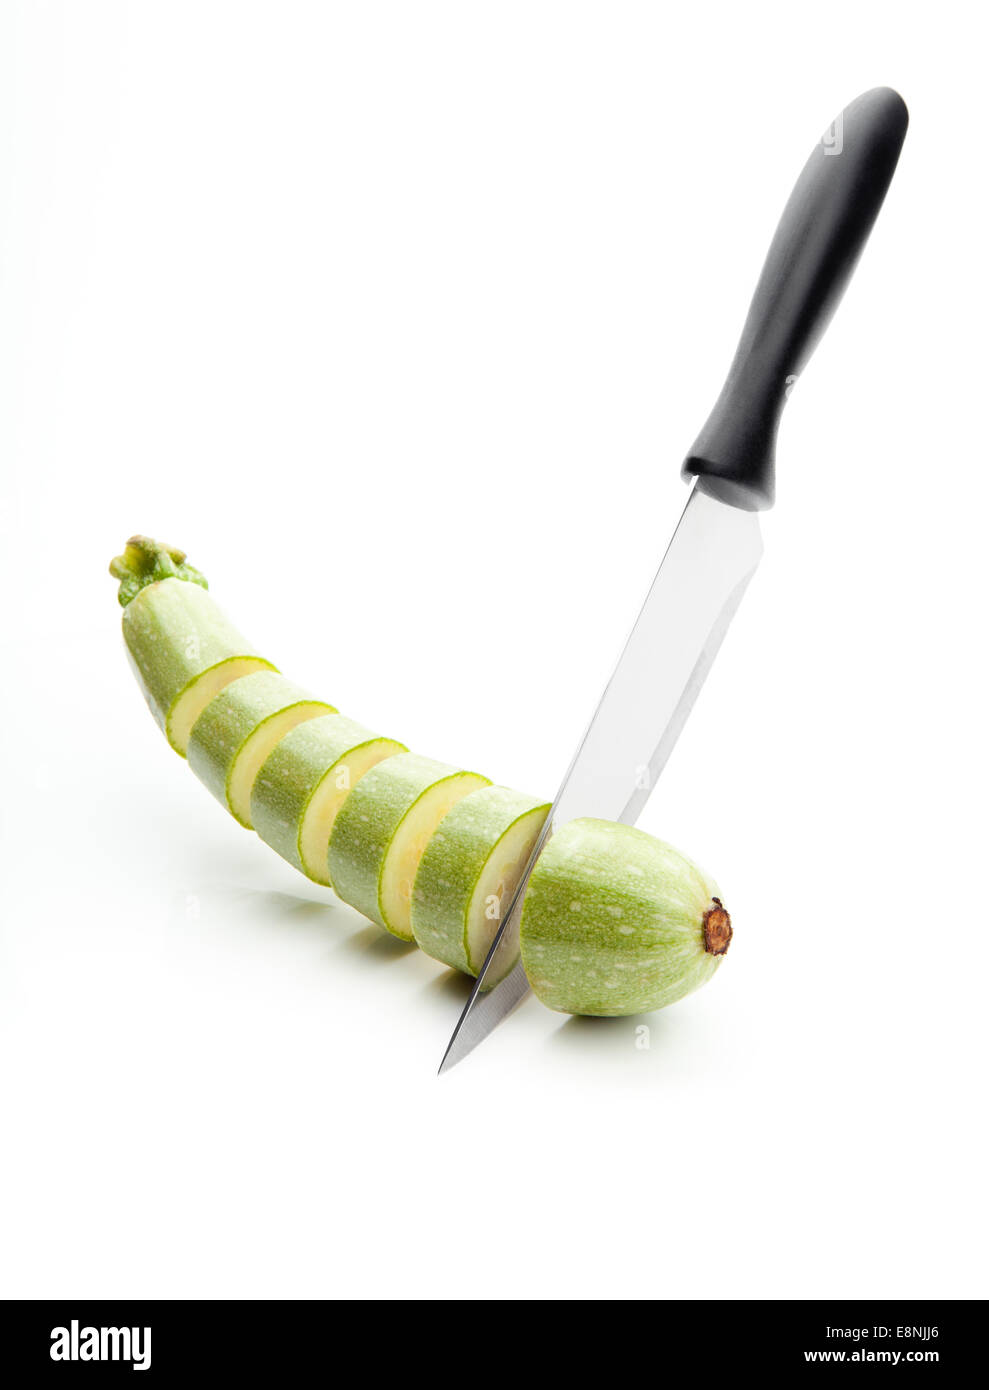 sharp knife, cut into pieces of squash on a white background - Stock Image